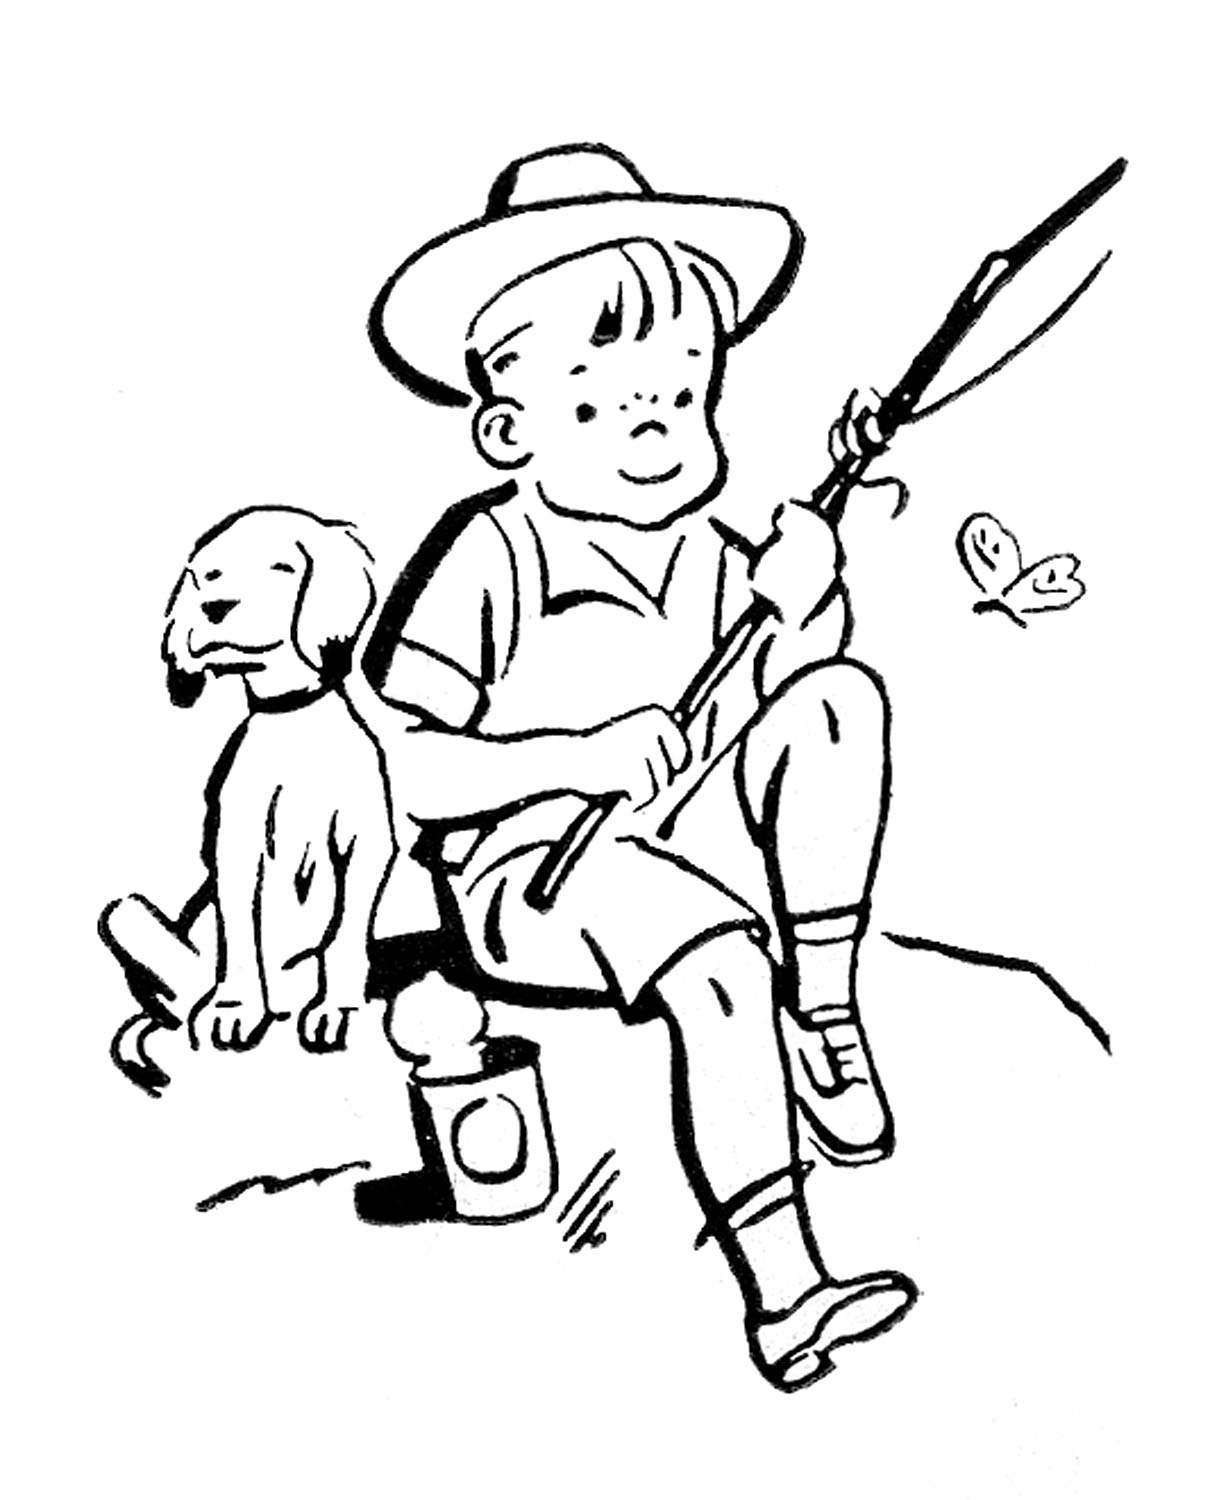 Retro clipart boy. Playing images cute kids